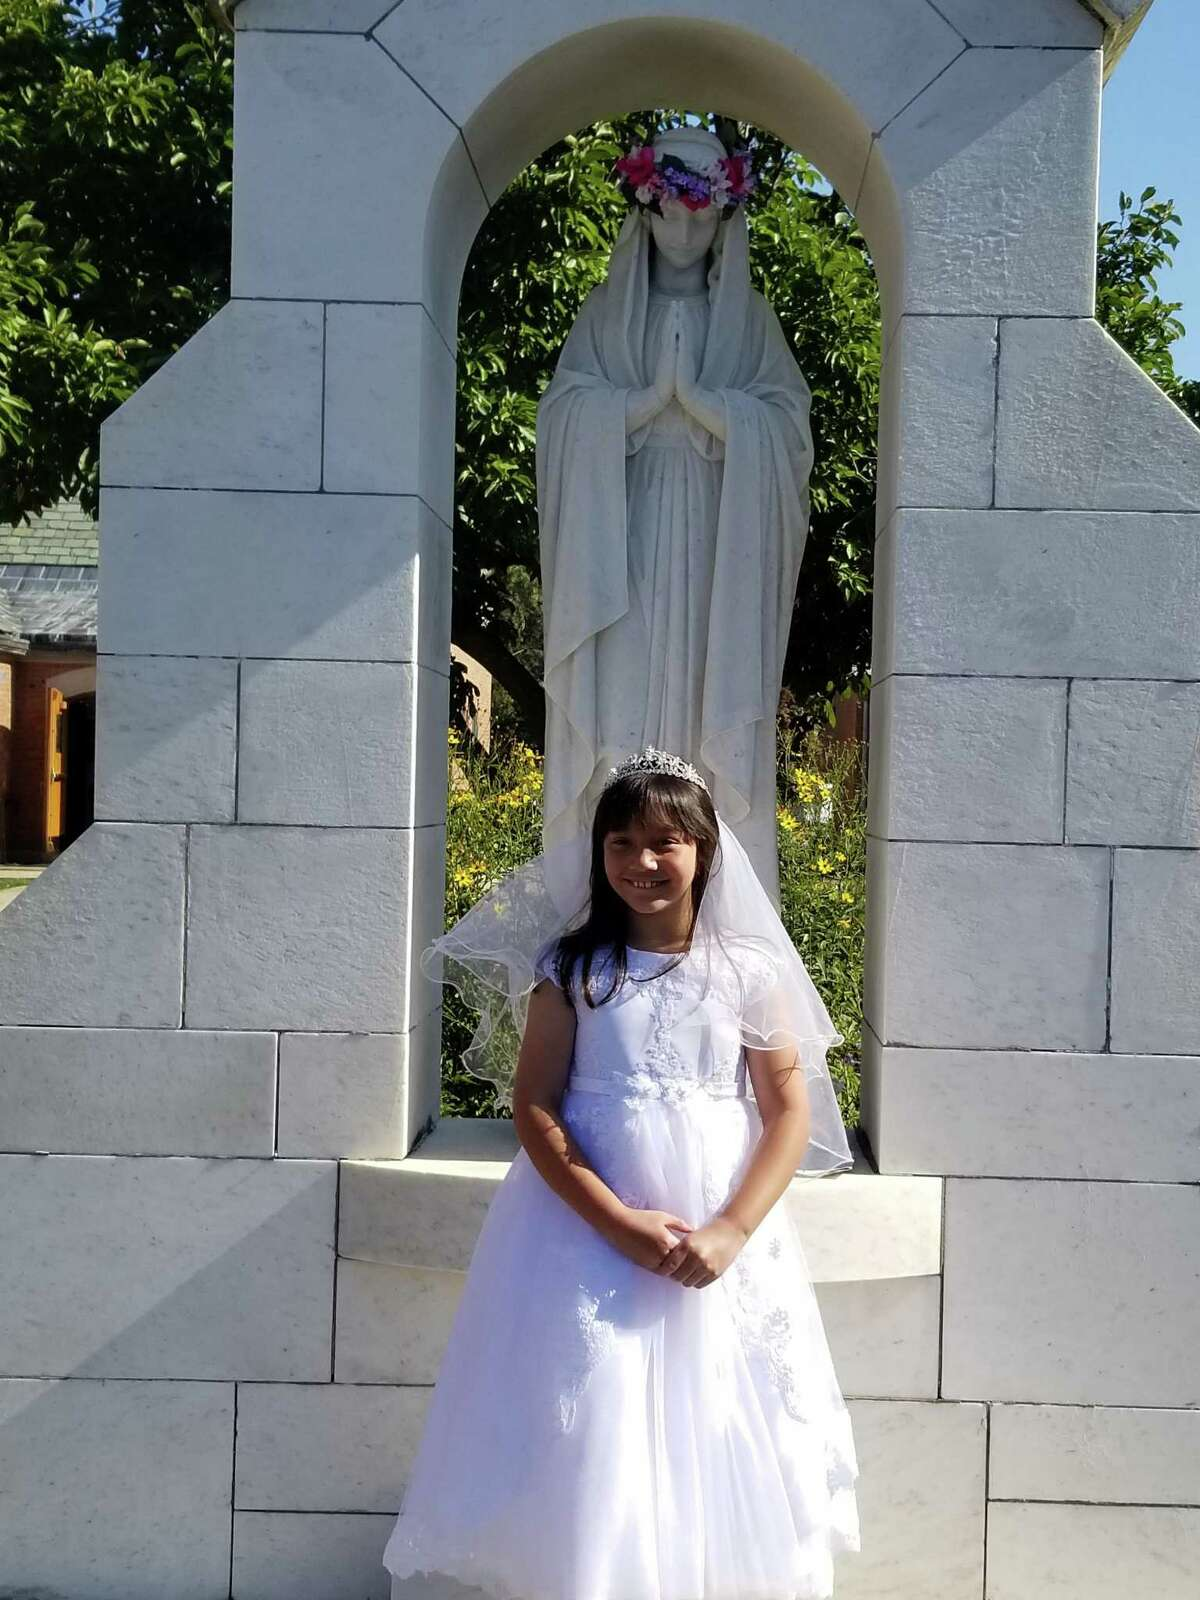 St. Mary School students made their First Holy Communion Oct. 3 in St. Mary Church in Milford. Students were supposed to make the sacrament in May, but due to the pandemic, it had to be rescheduled.